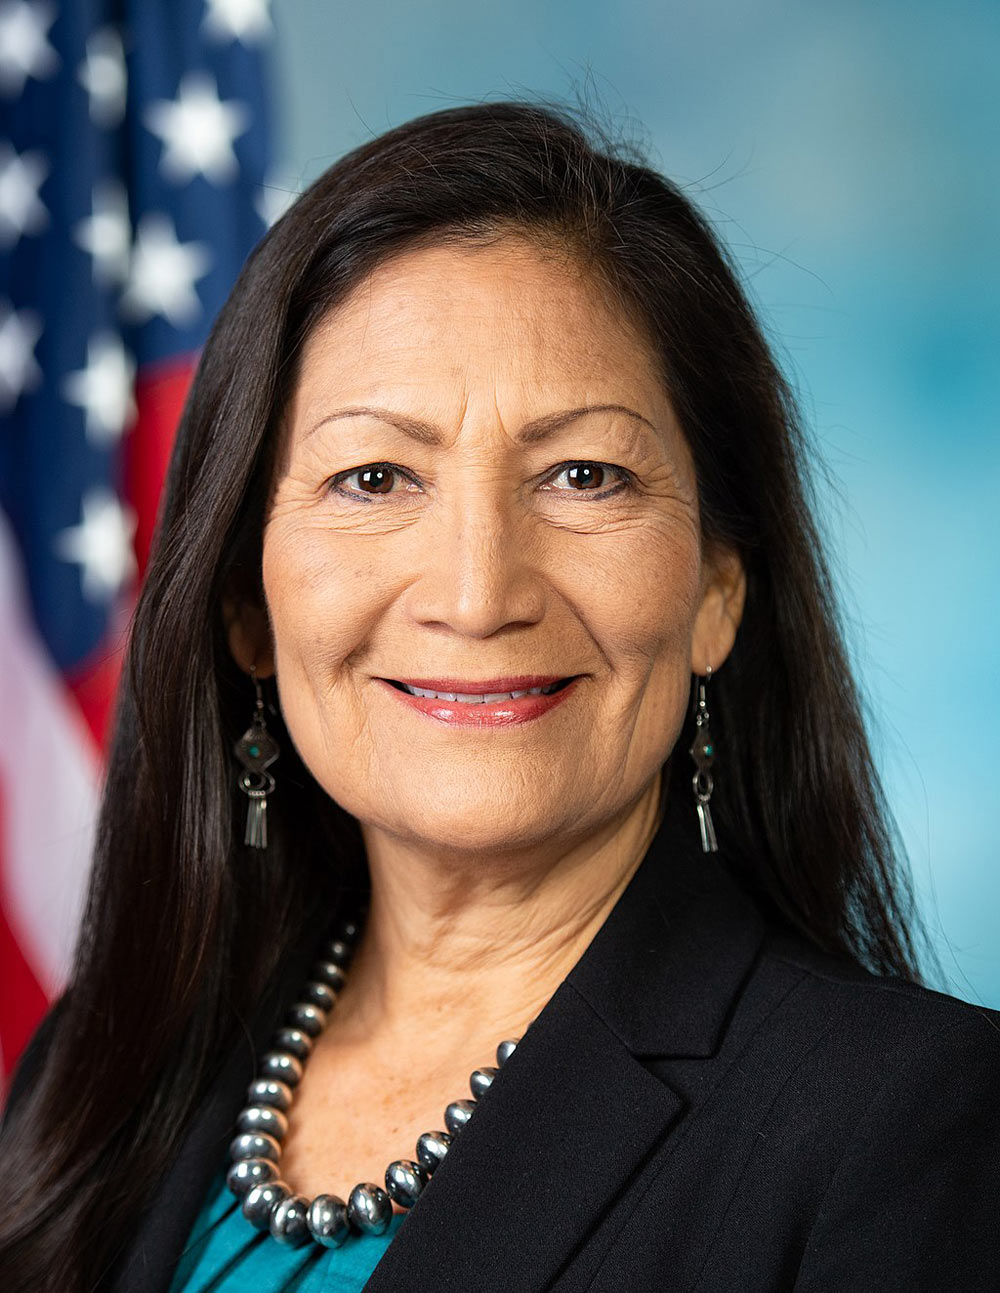 New Mexico Representative Deb Haaland has been nominated to serve as Secretary of the Interior.